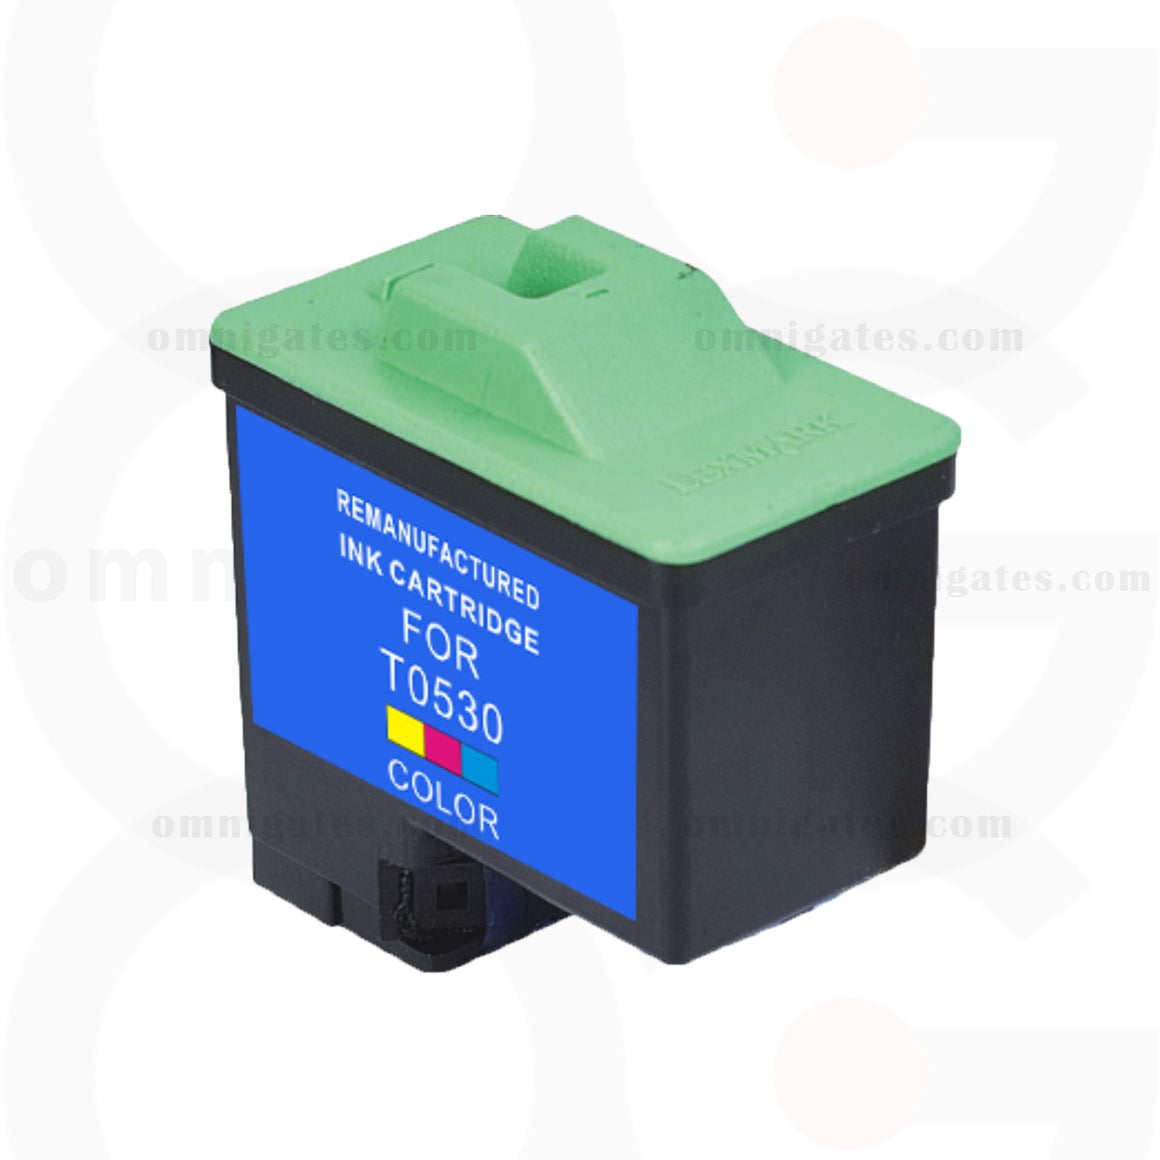 Color OGP Remanufactured Dell T0530 Inkjet Cartridge